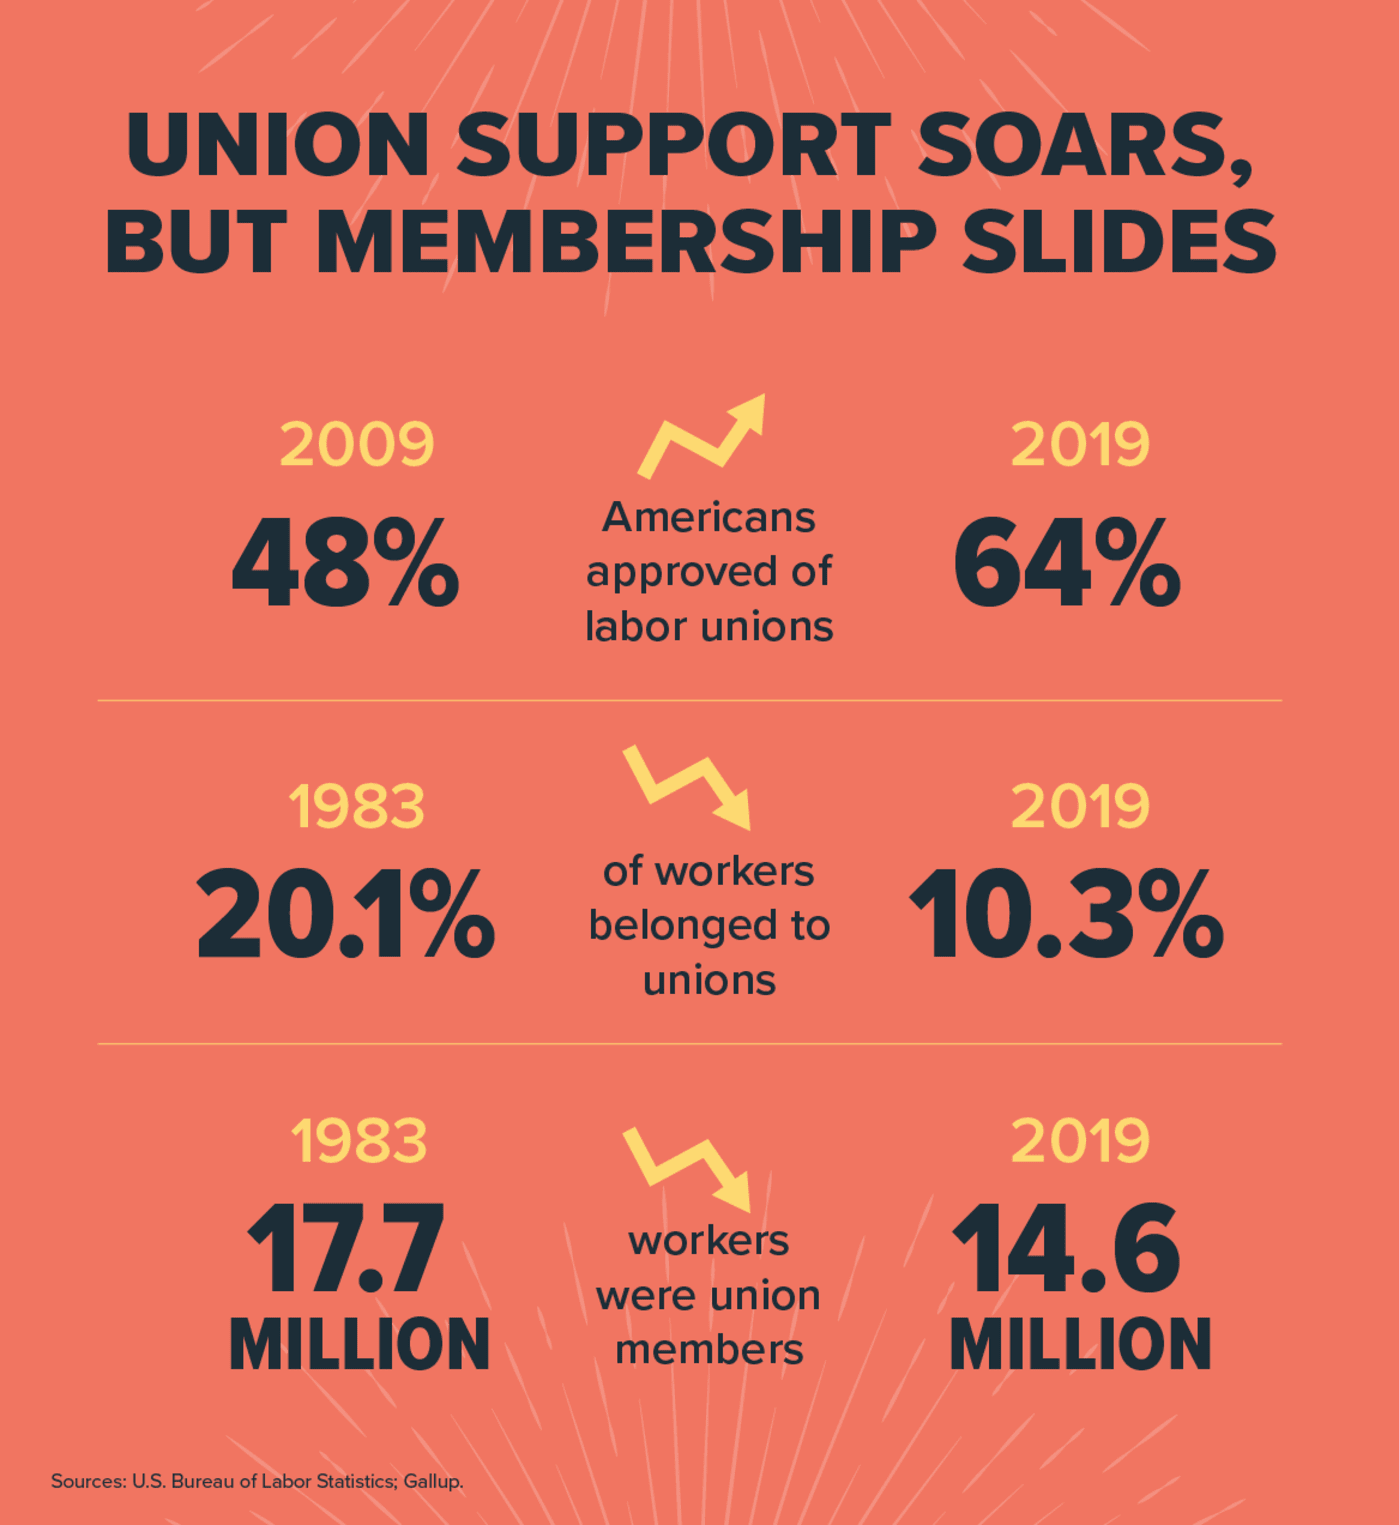 Union Support Soars, but Membership Slides